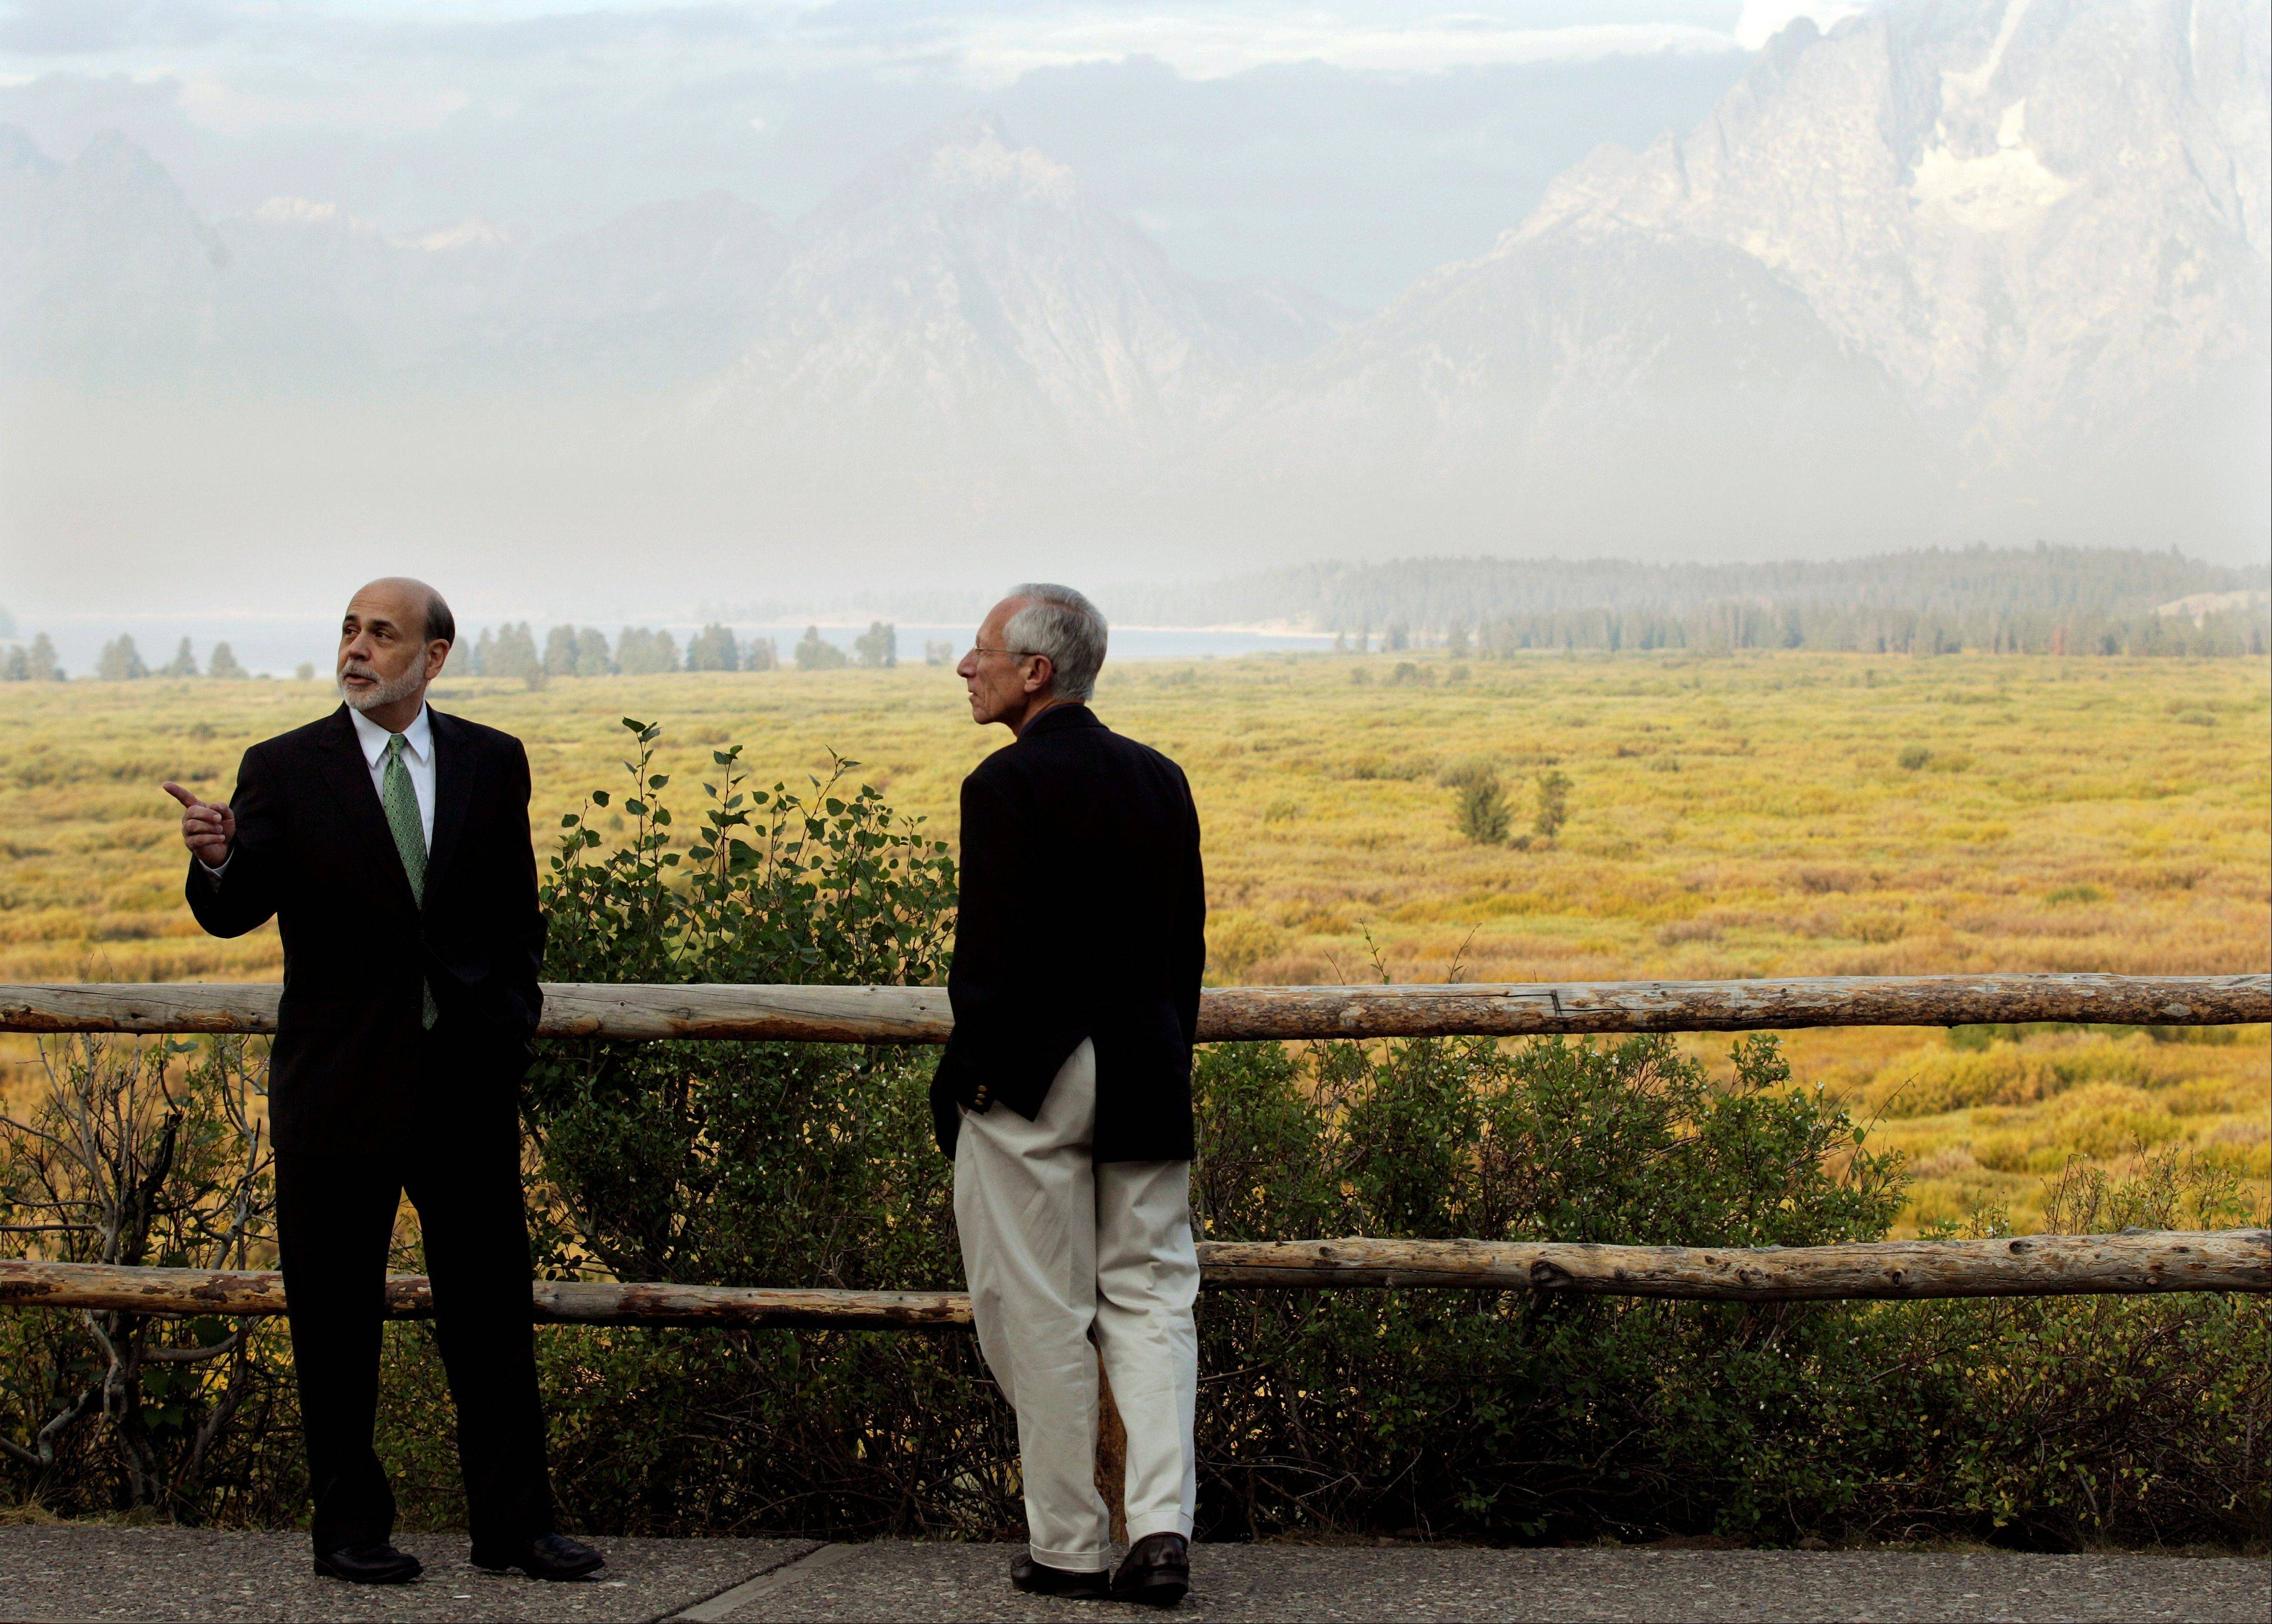 Federal Reserve Chairman Ben Bernanke, left, and Stanley Fischer, right, Governor of the Bank of Israel, talk together last year outside the Jackson Hole Economic Symposium, at Grand Teton National Park near Jackson Hole, Wyo.